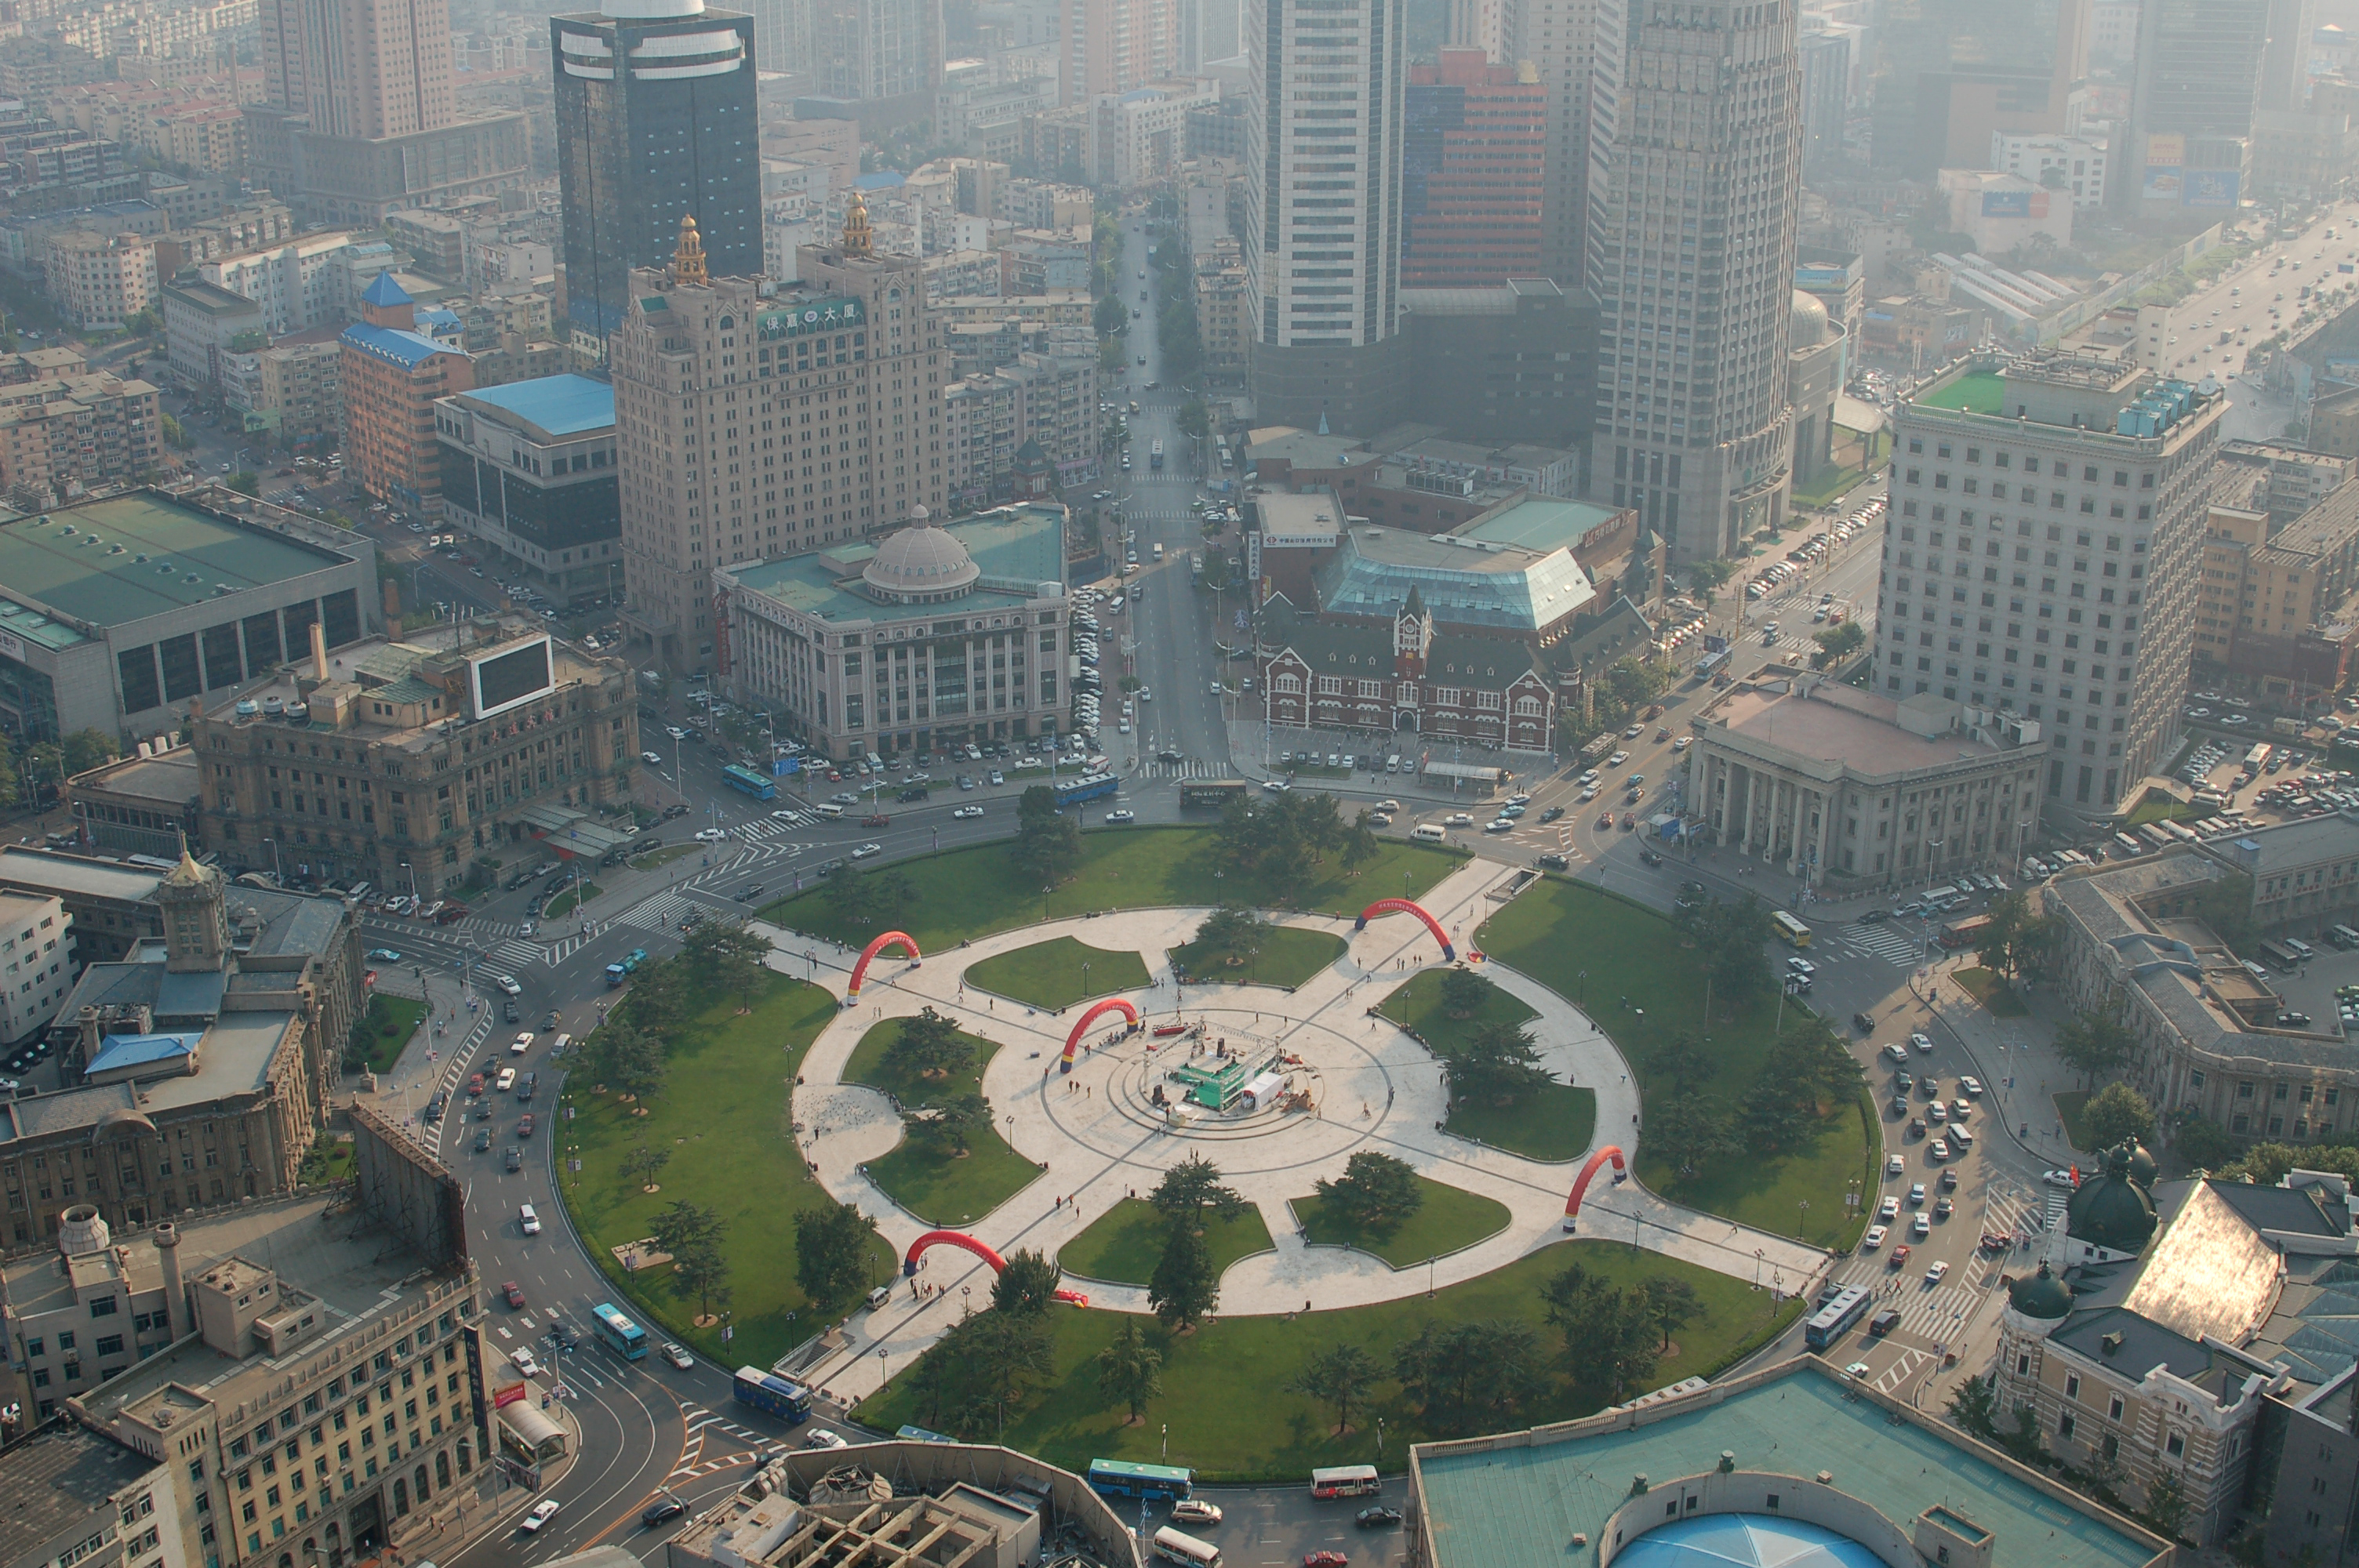 Zhongshan Square in the city of Dalian